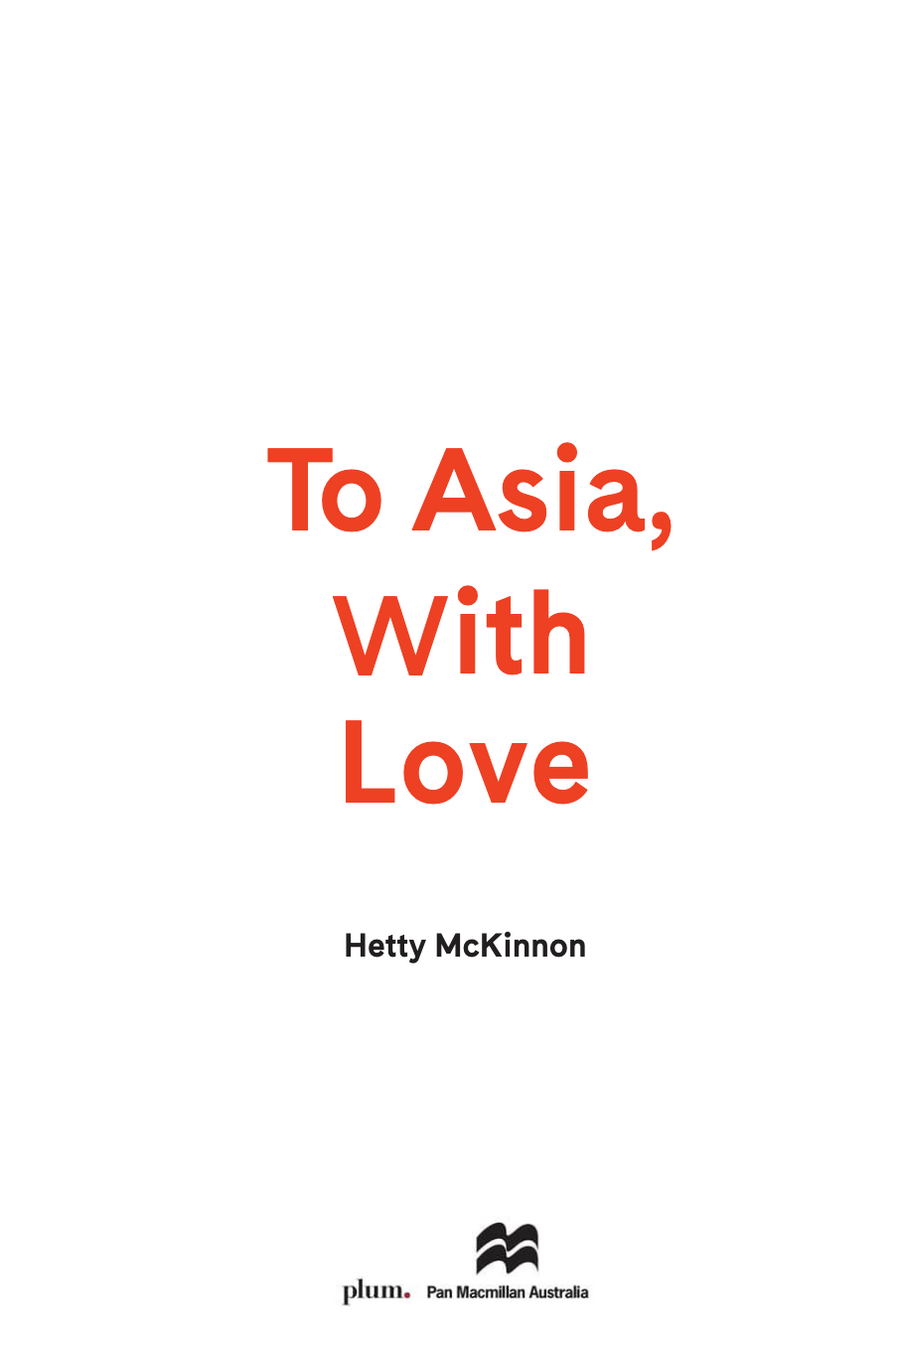 To Asia With Love